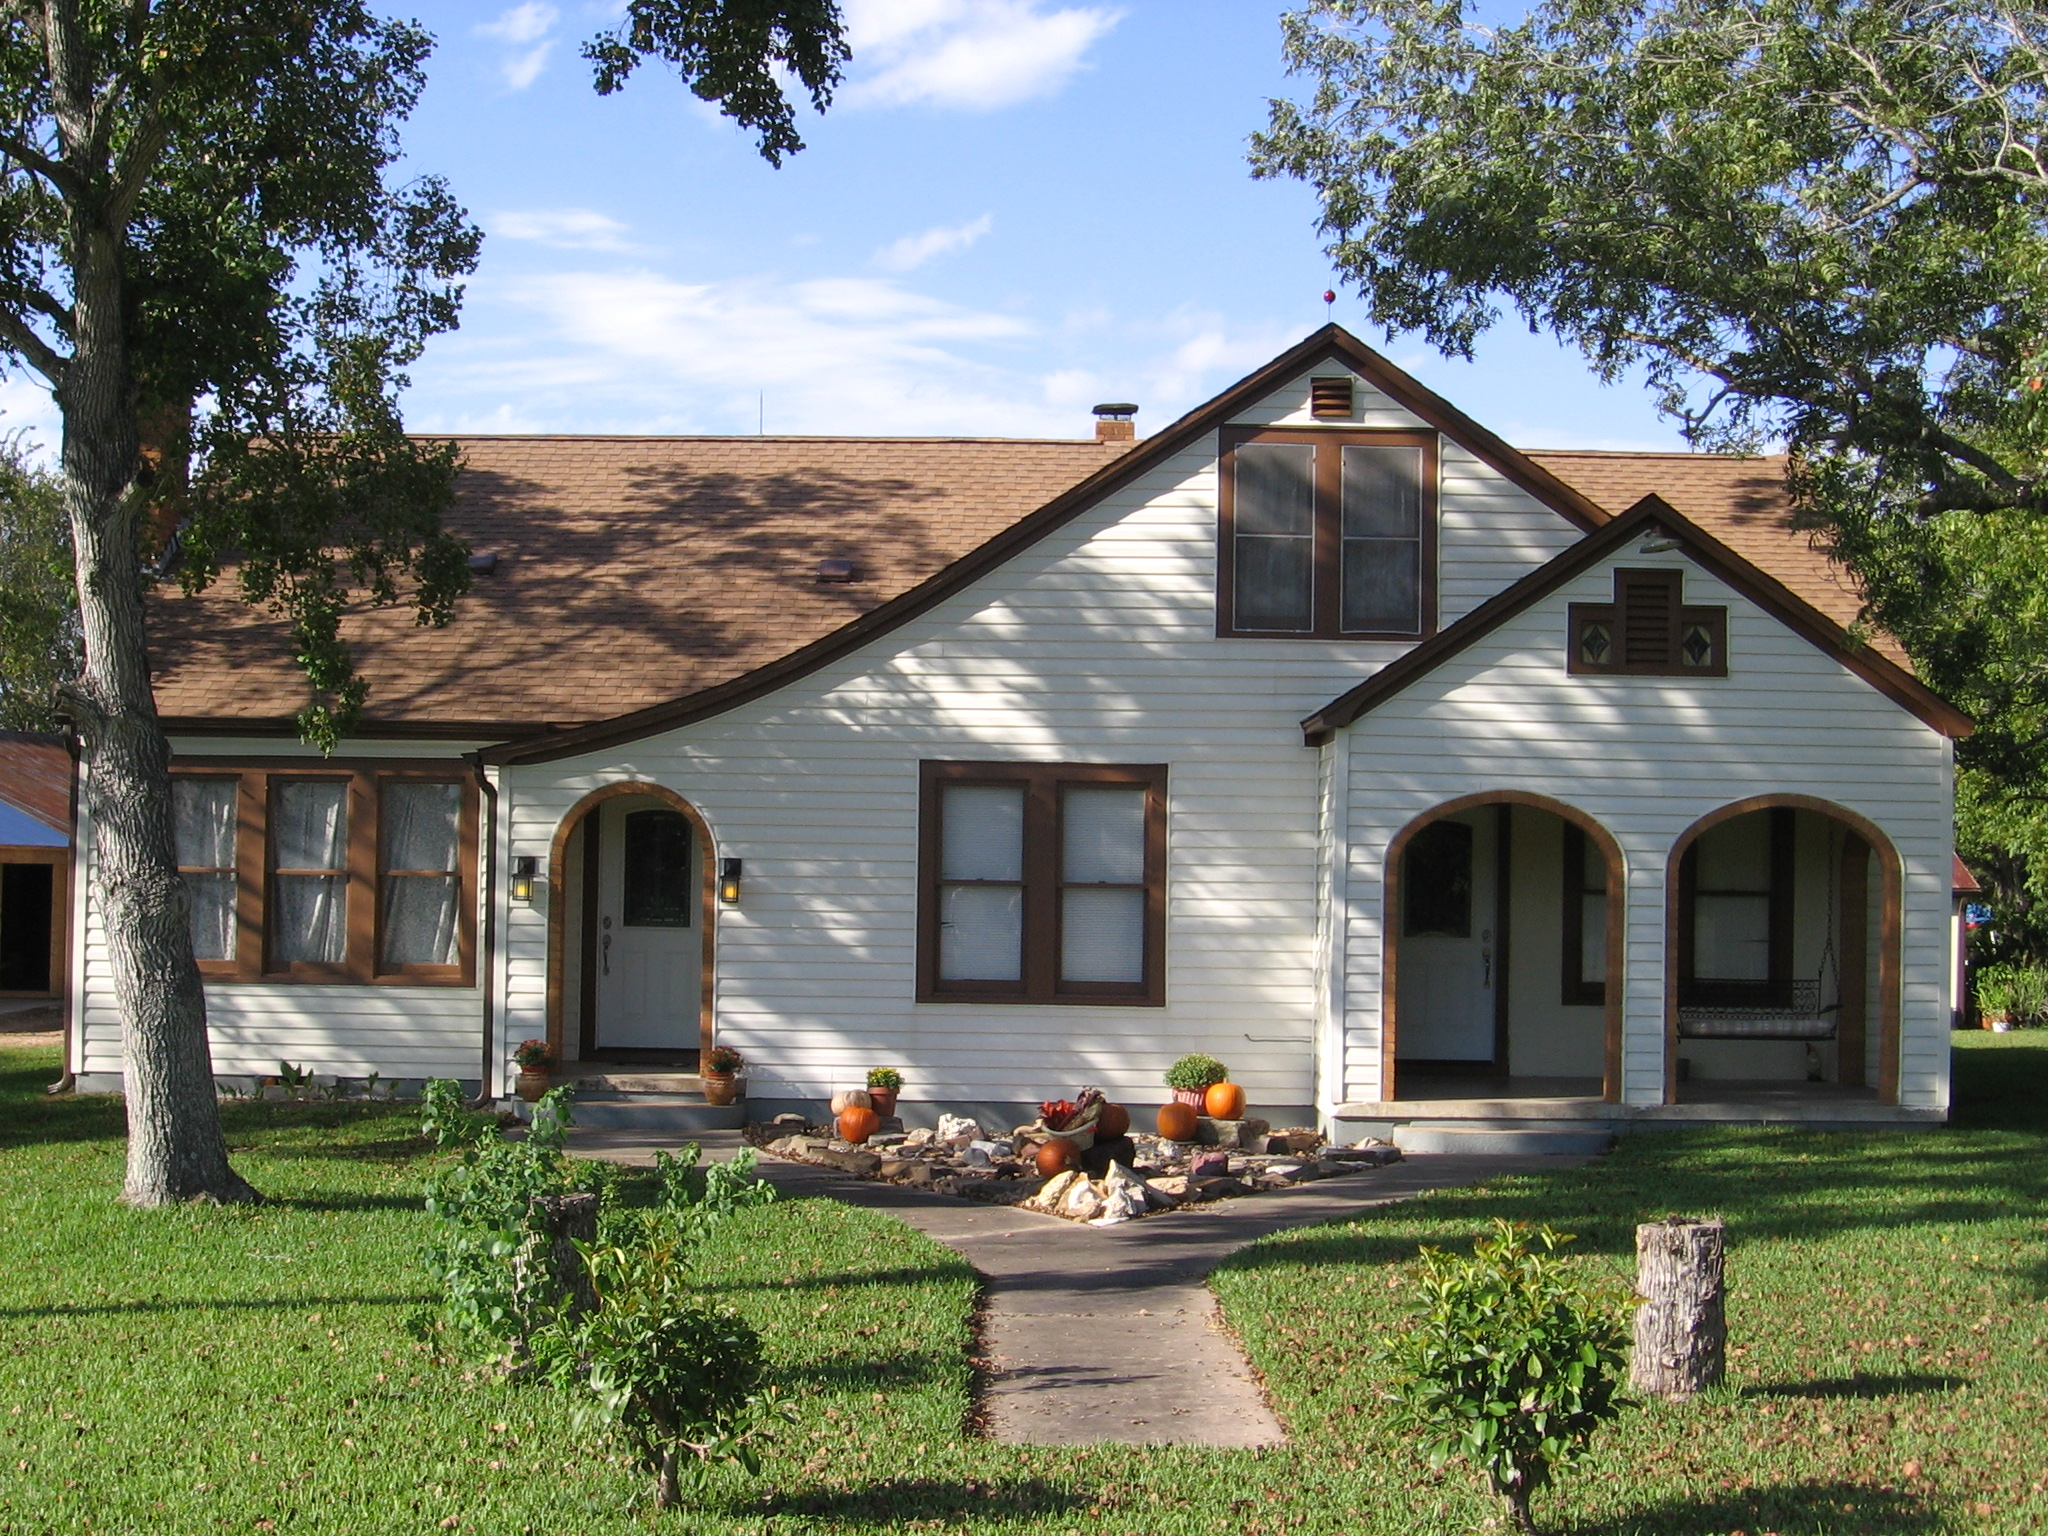 Bungalow style house 1920s bungalow style house craftsman - What is a bungalow ...